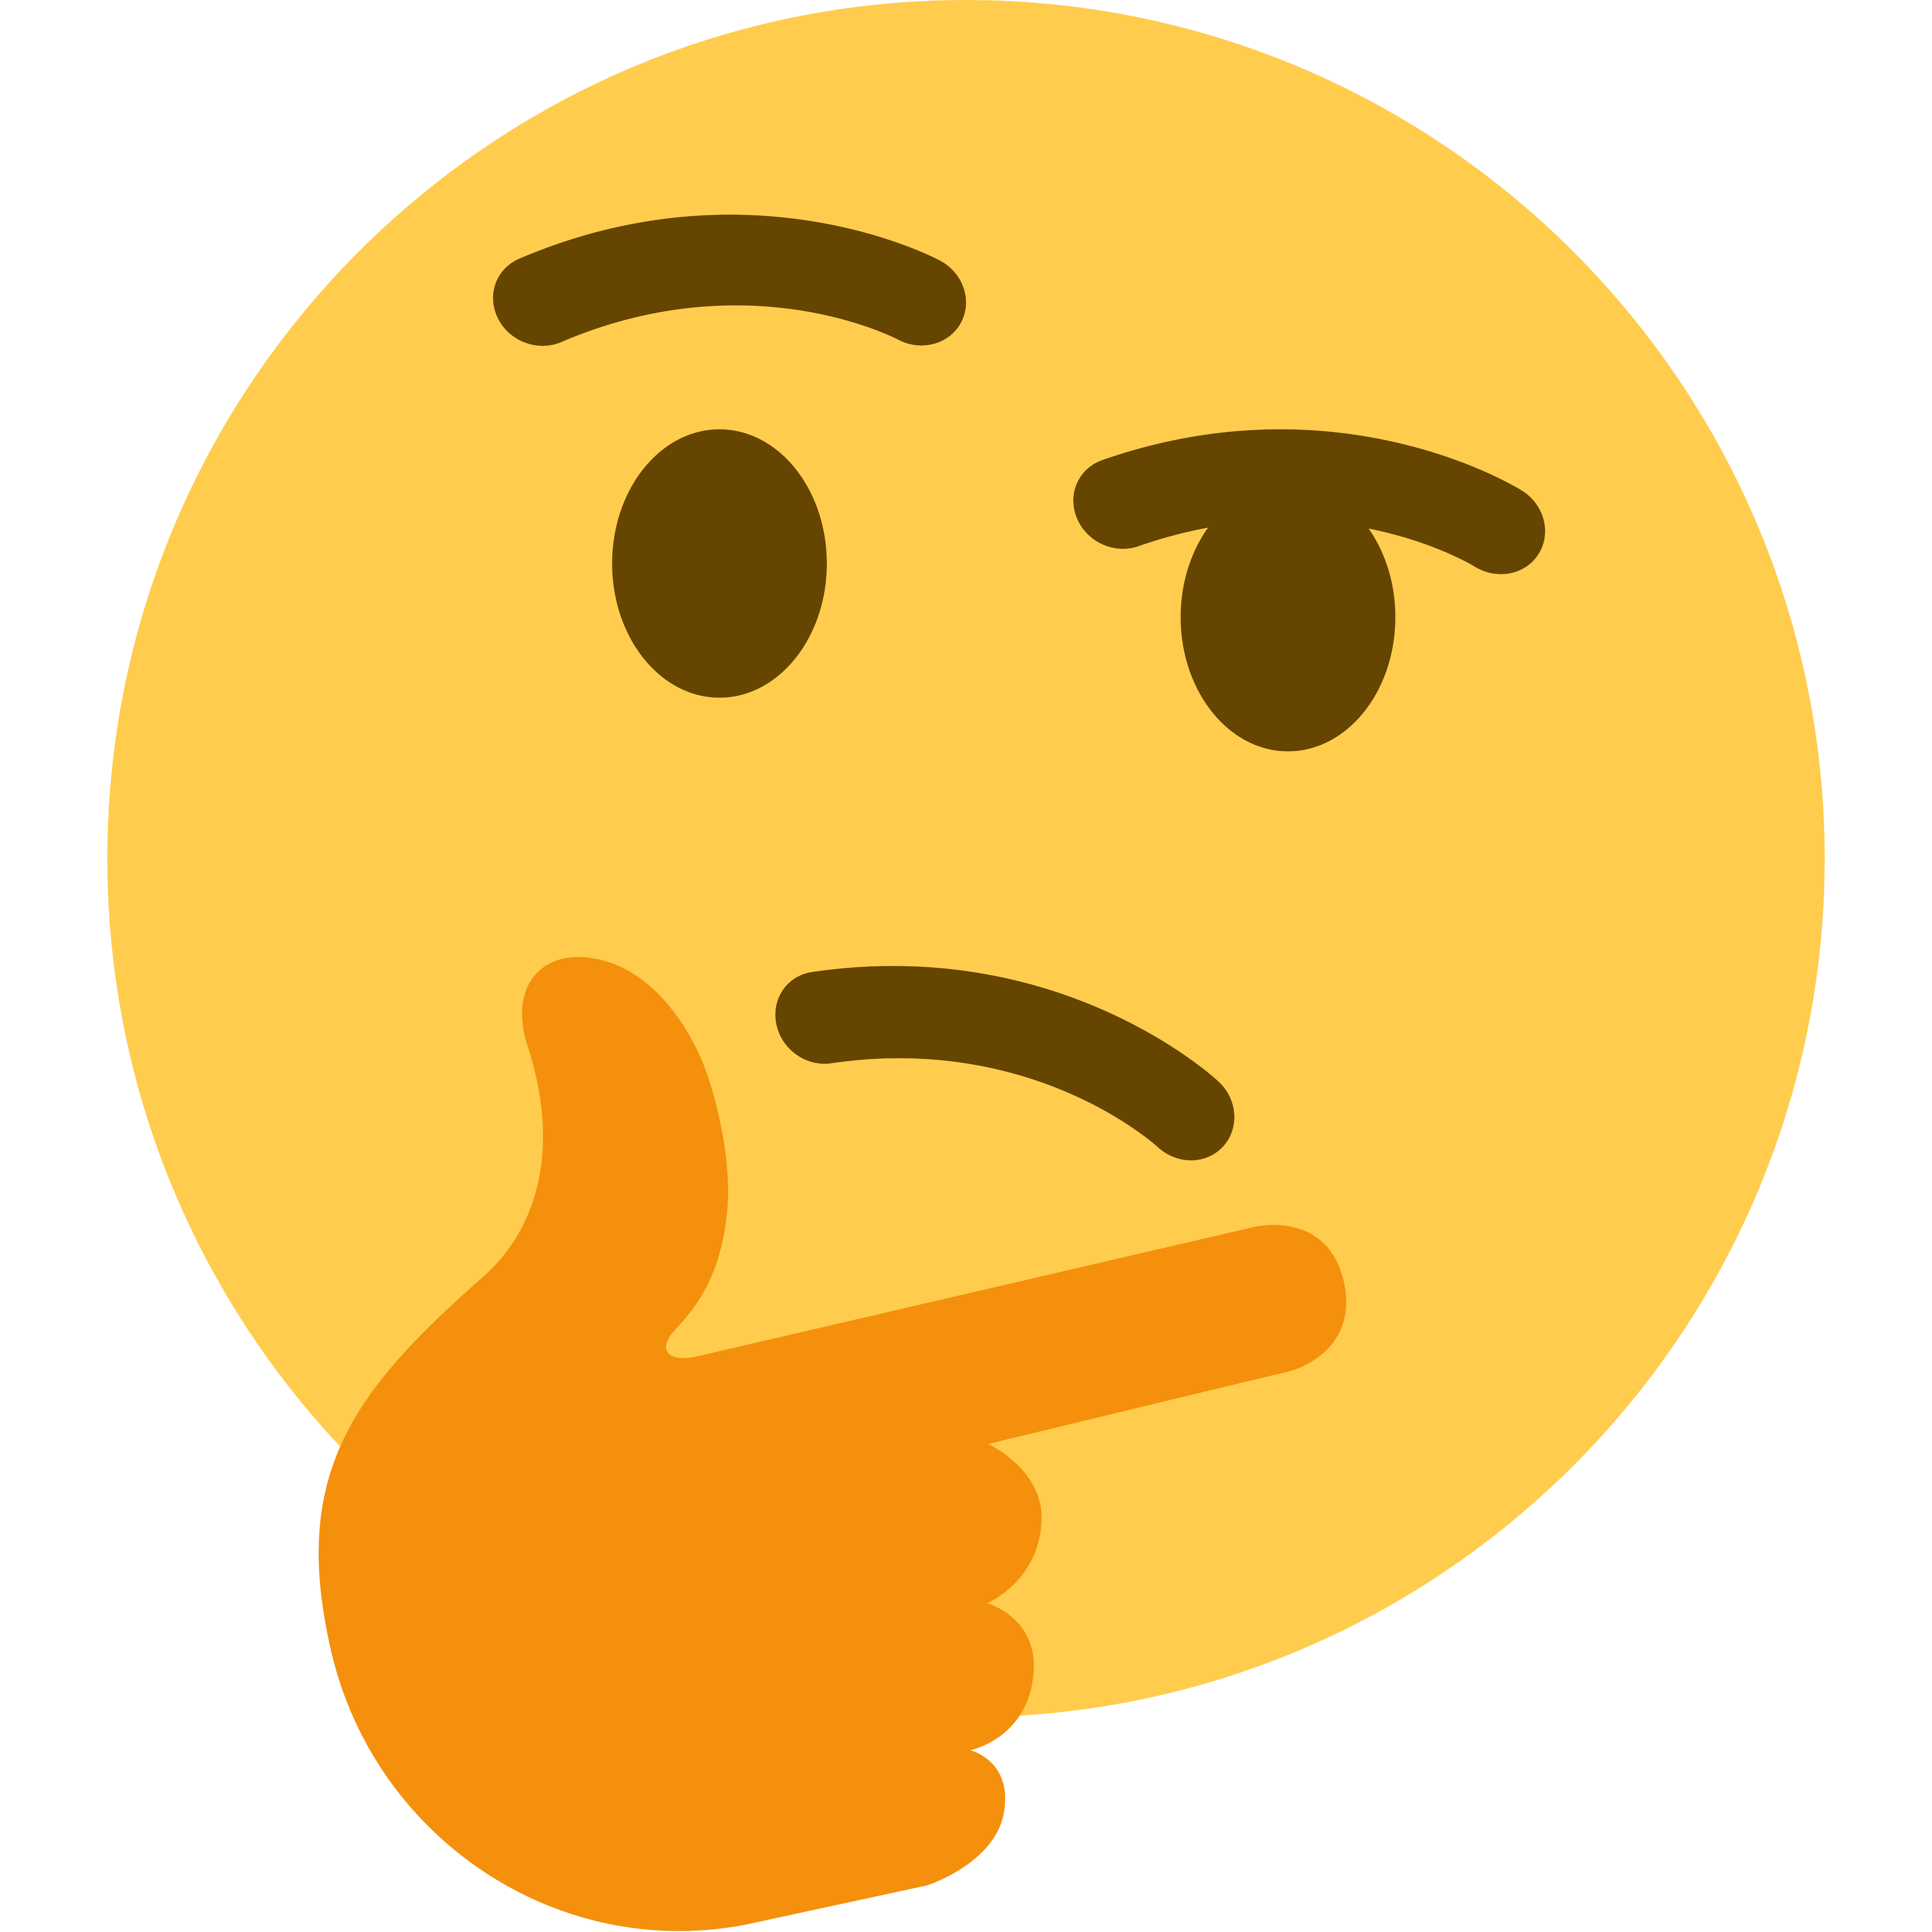 Thinking meme face png. Super high resolution transparent